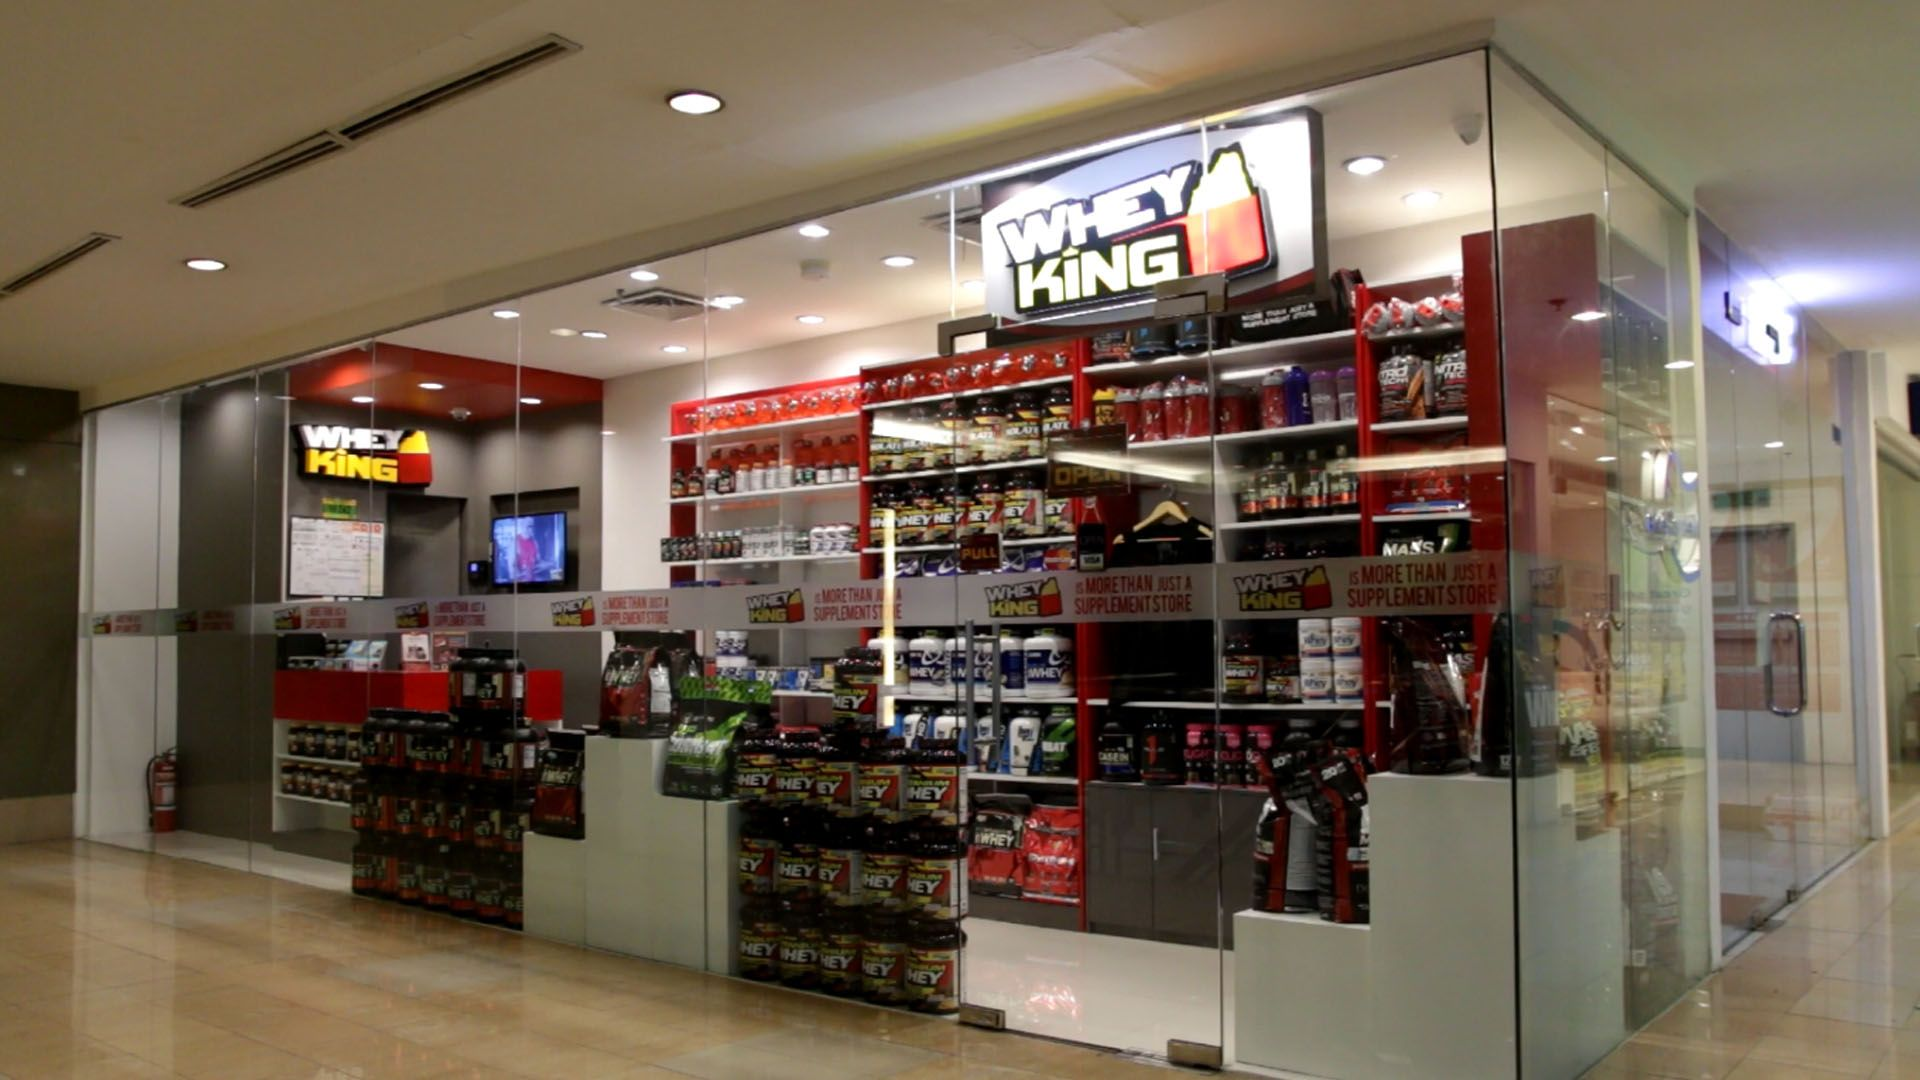 Whey King Supplements Makati Branch